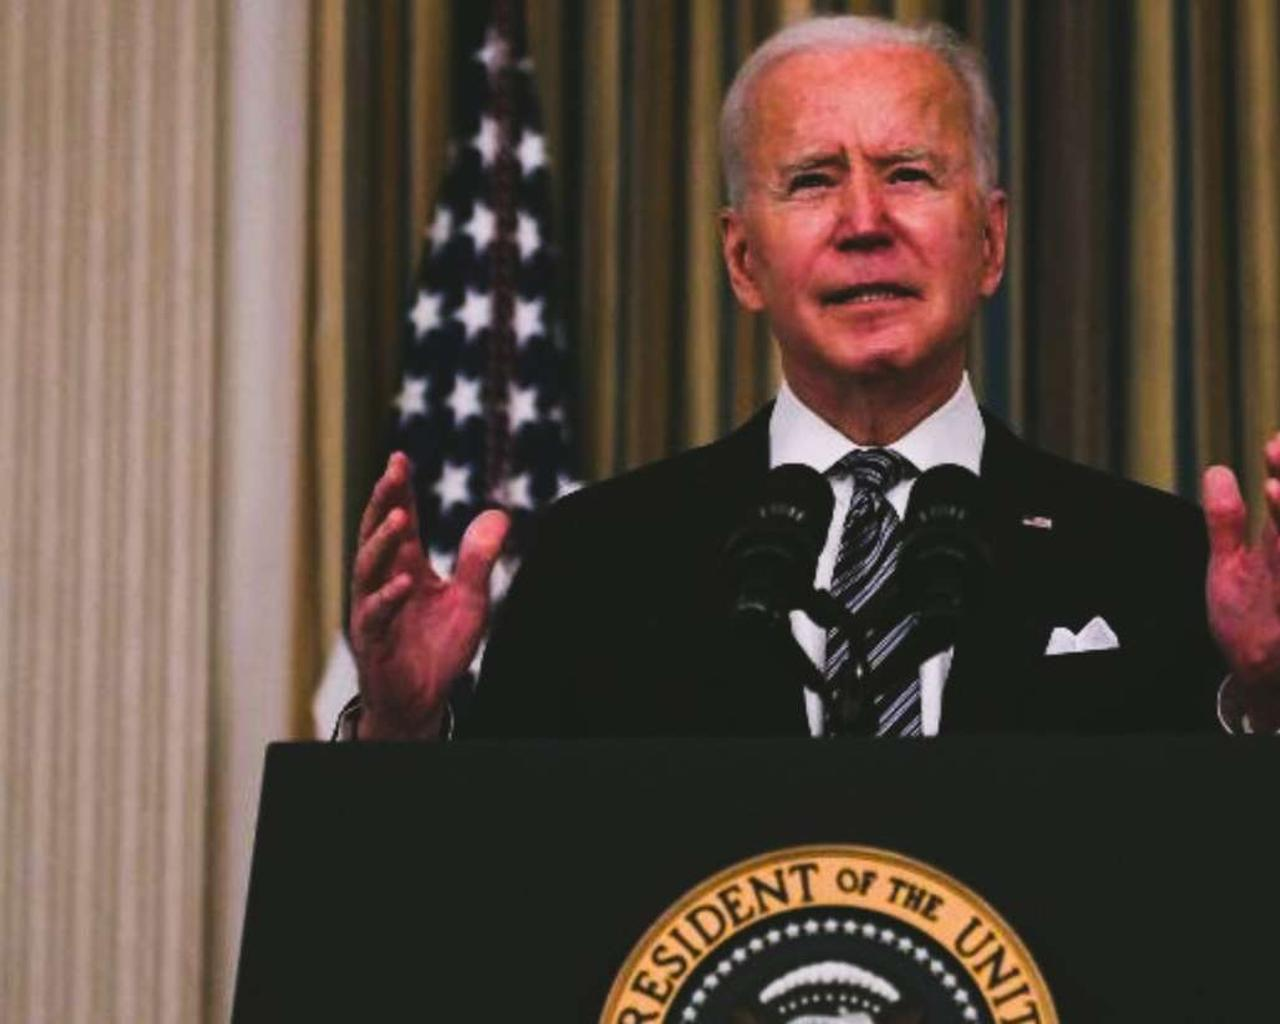 Joe Biden to hold a first presidential press conference on March 25: White House